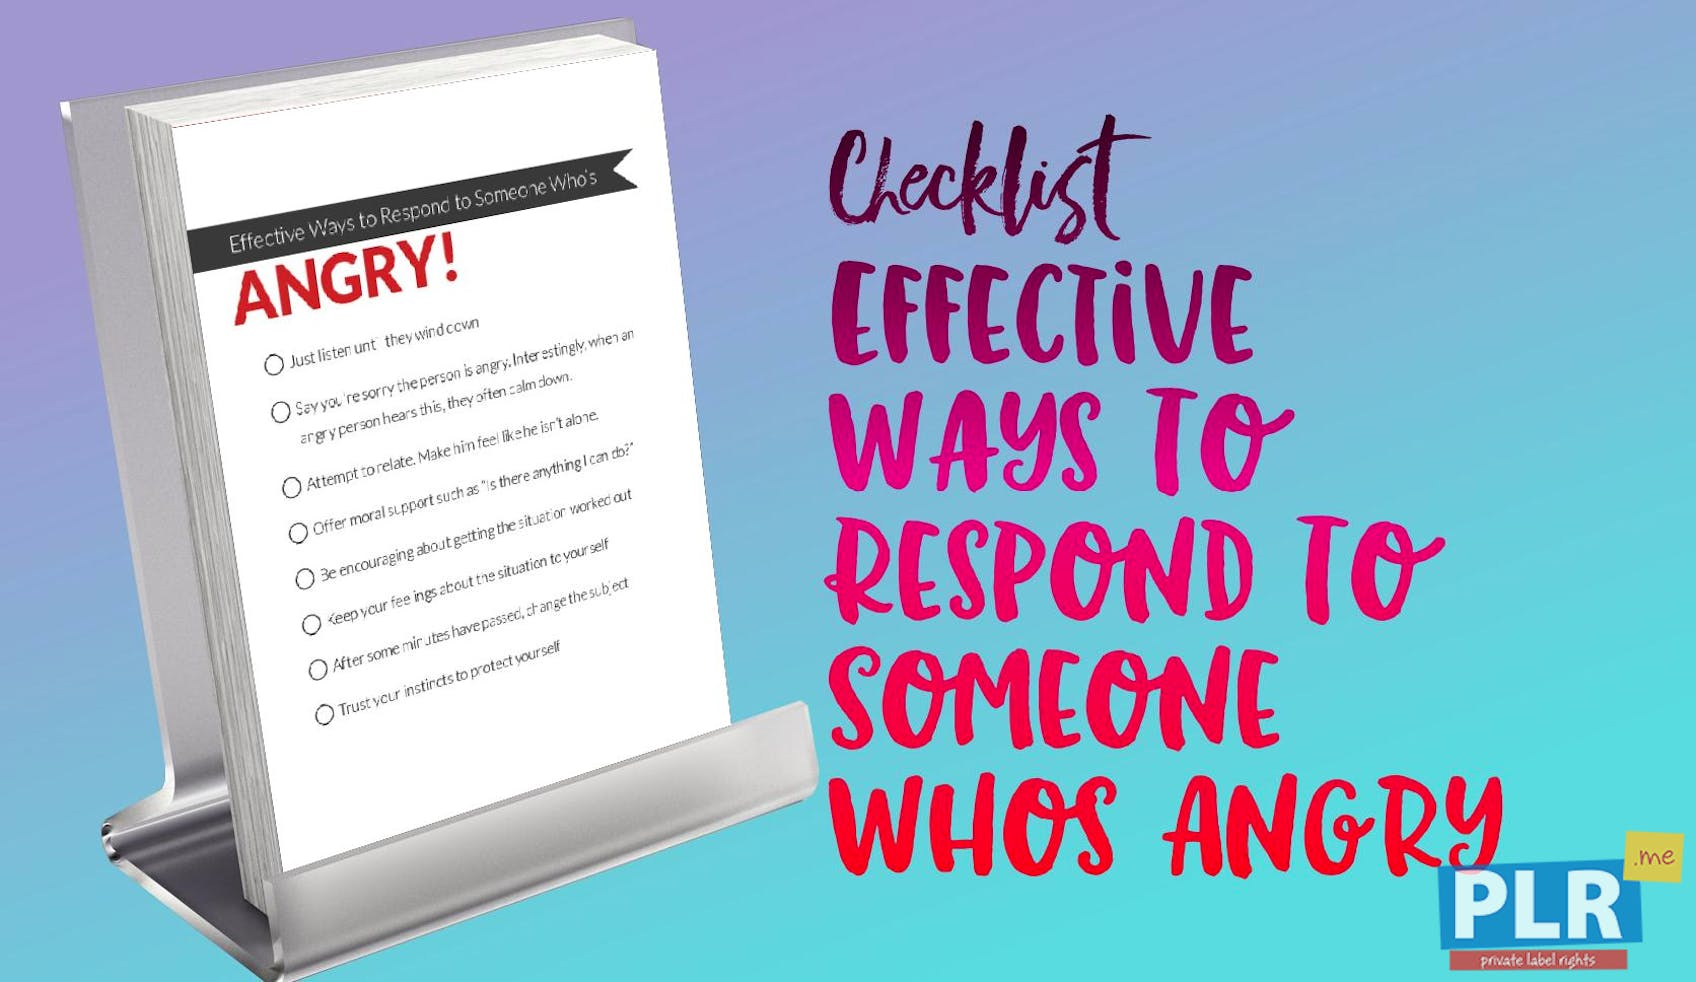 Effective Ways To Respond To Someone Whos Angry